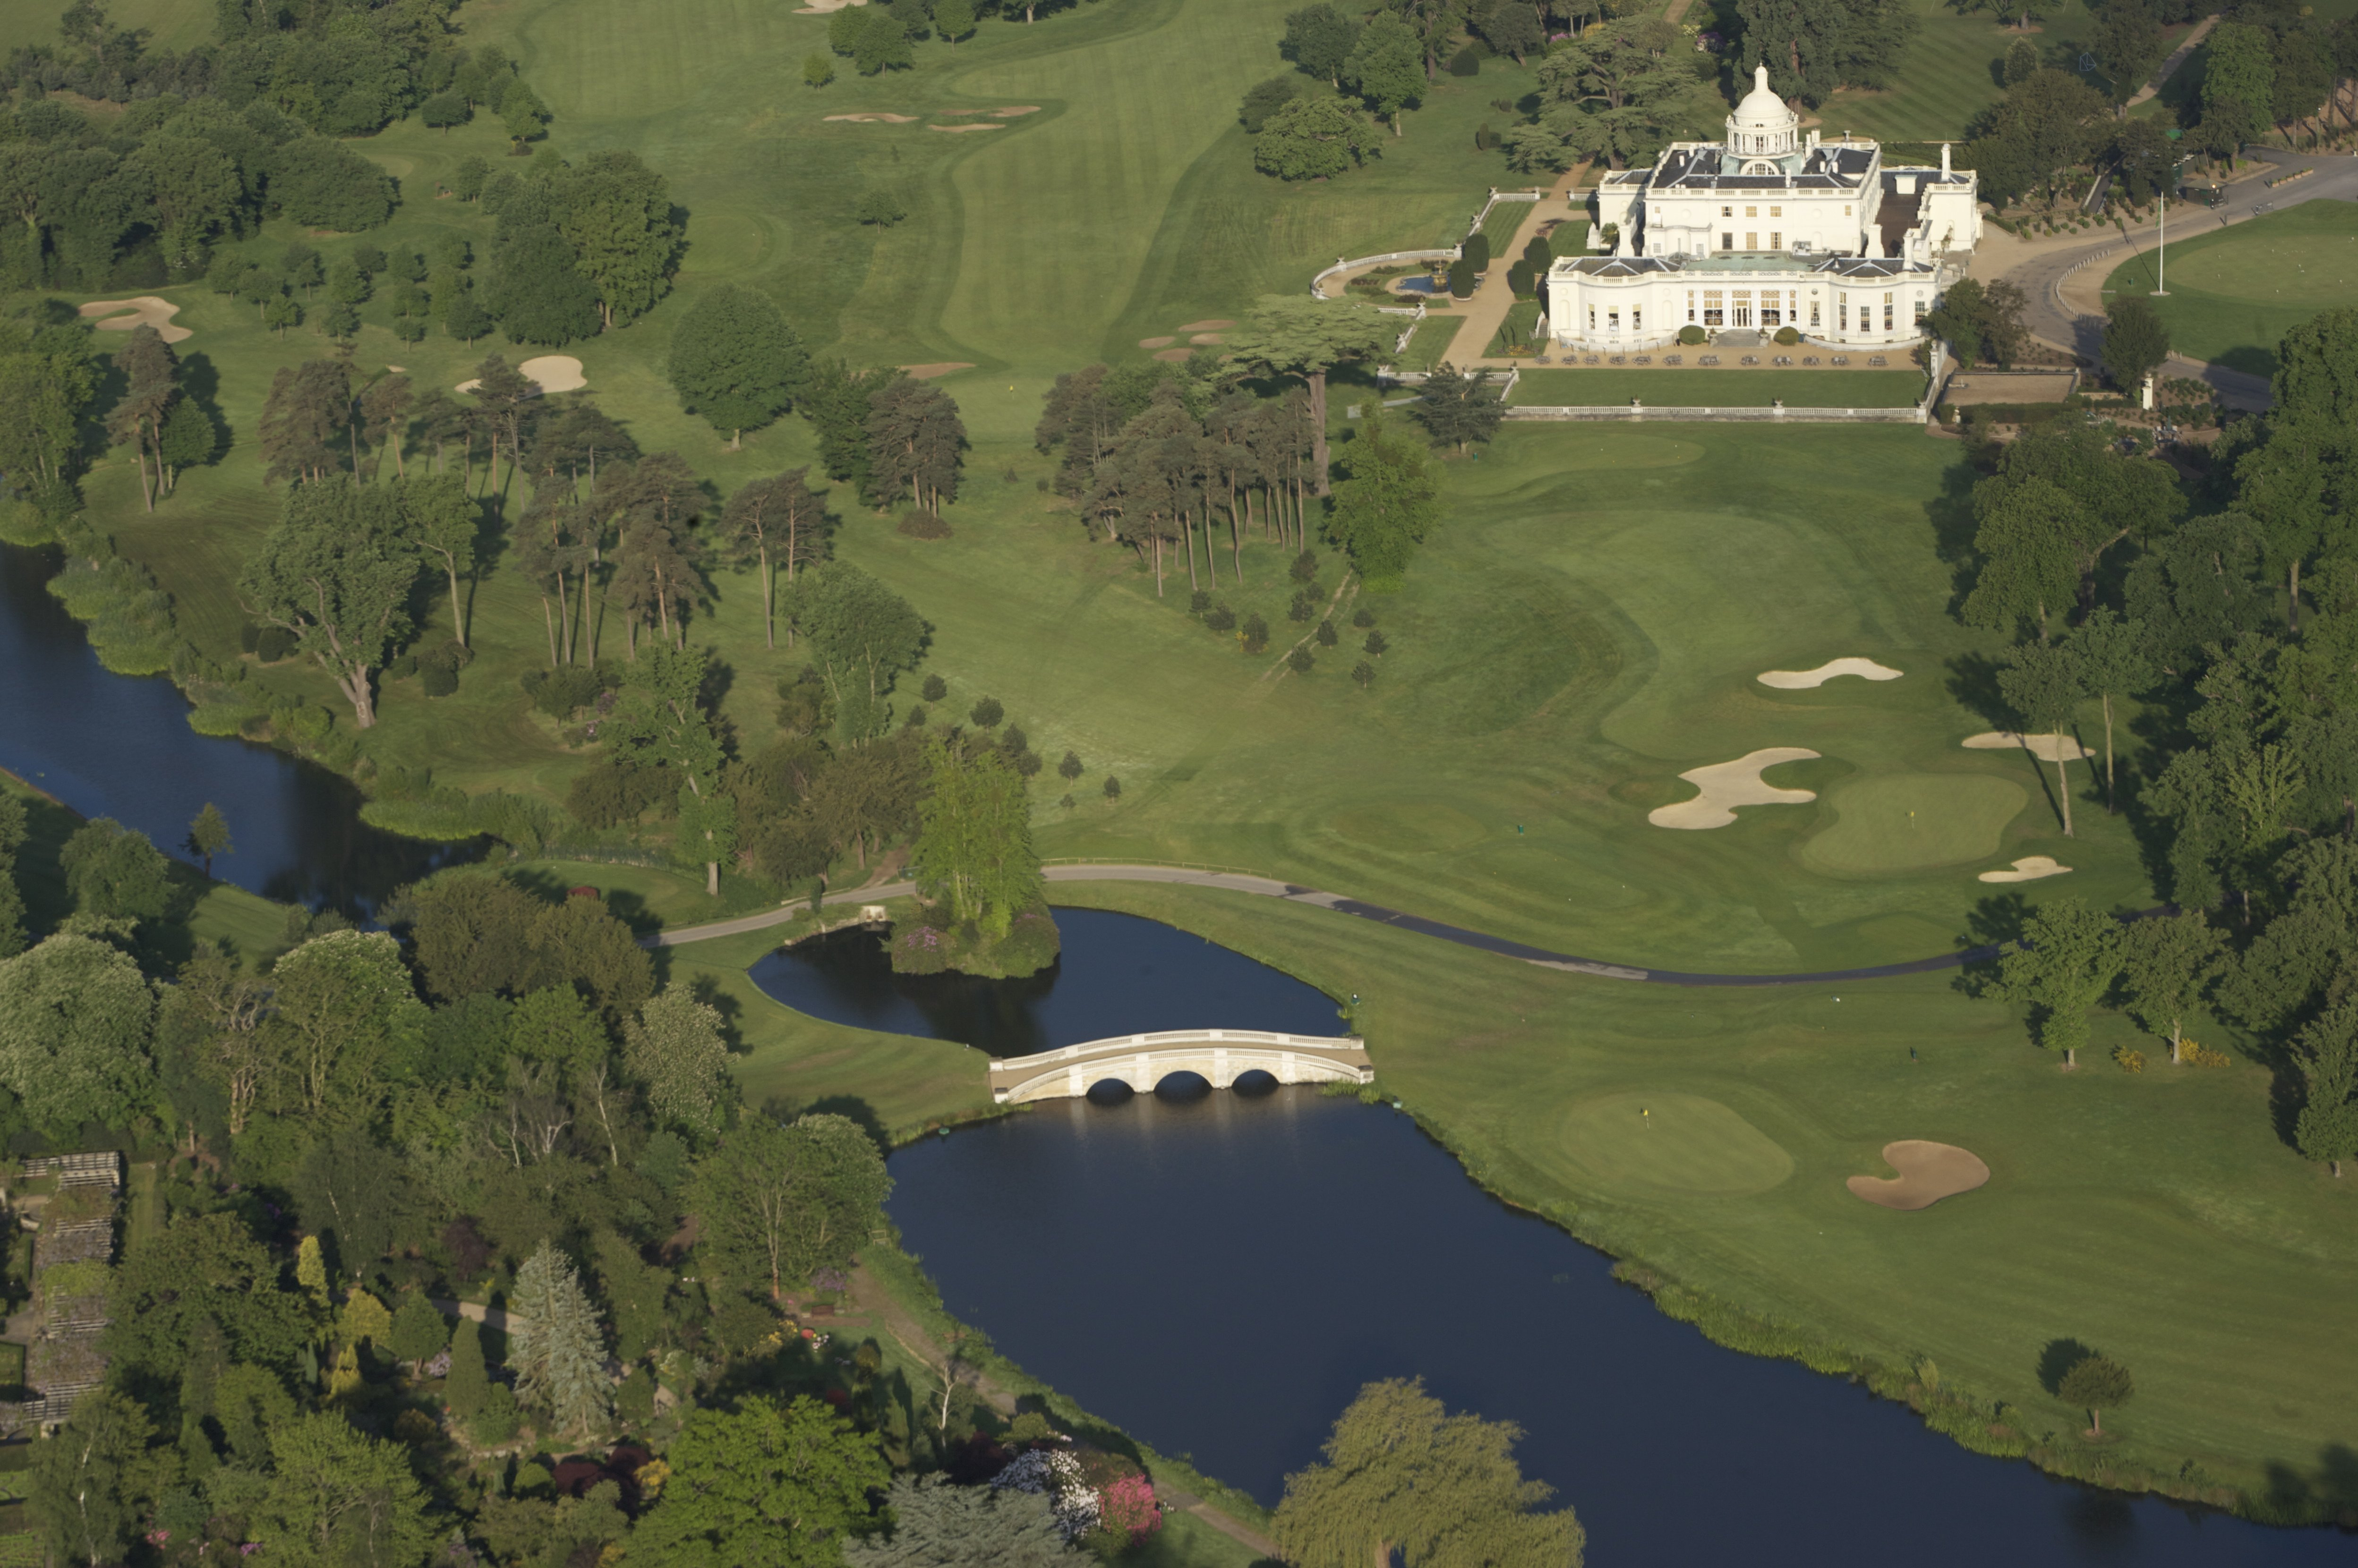 Aerial Shot of the Mansion and Repton Bridge by Durkc (CC)